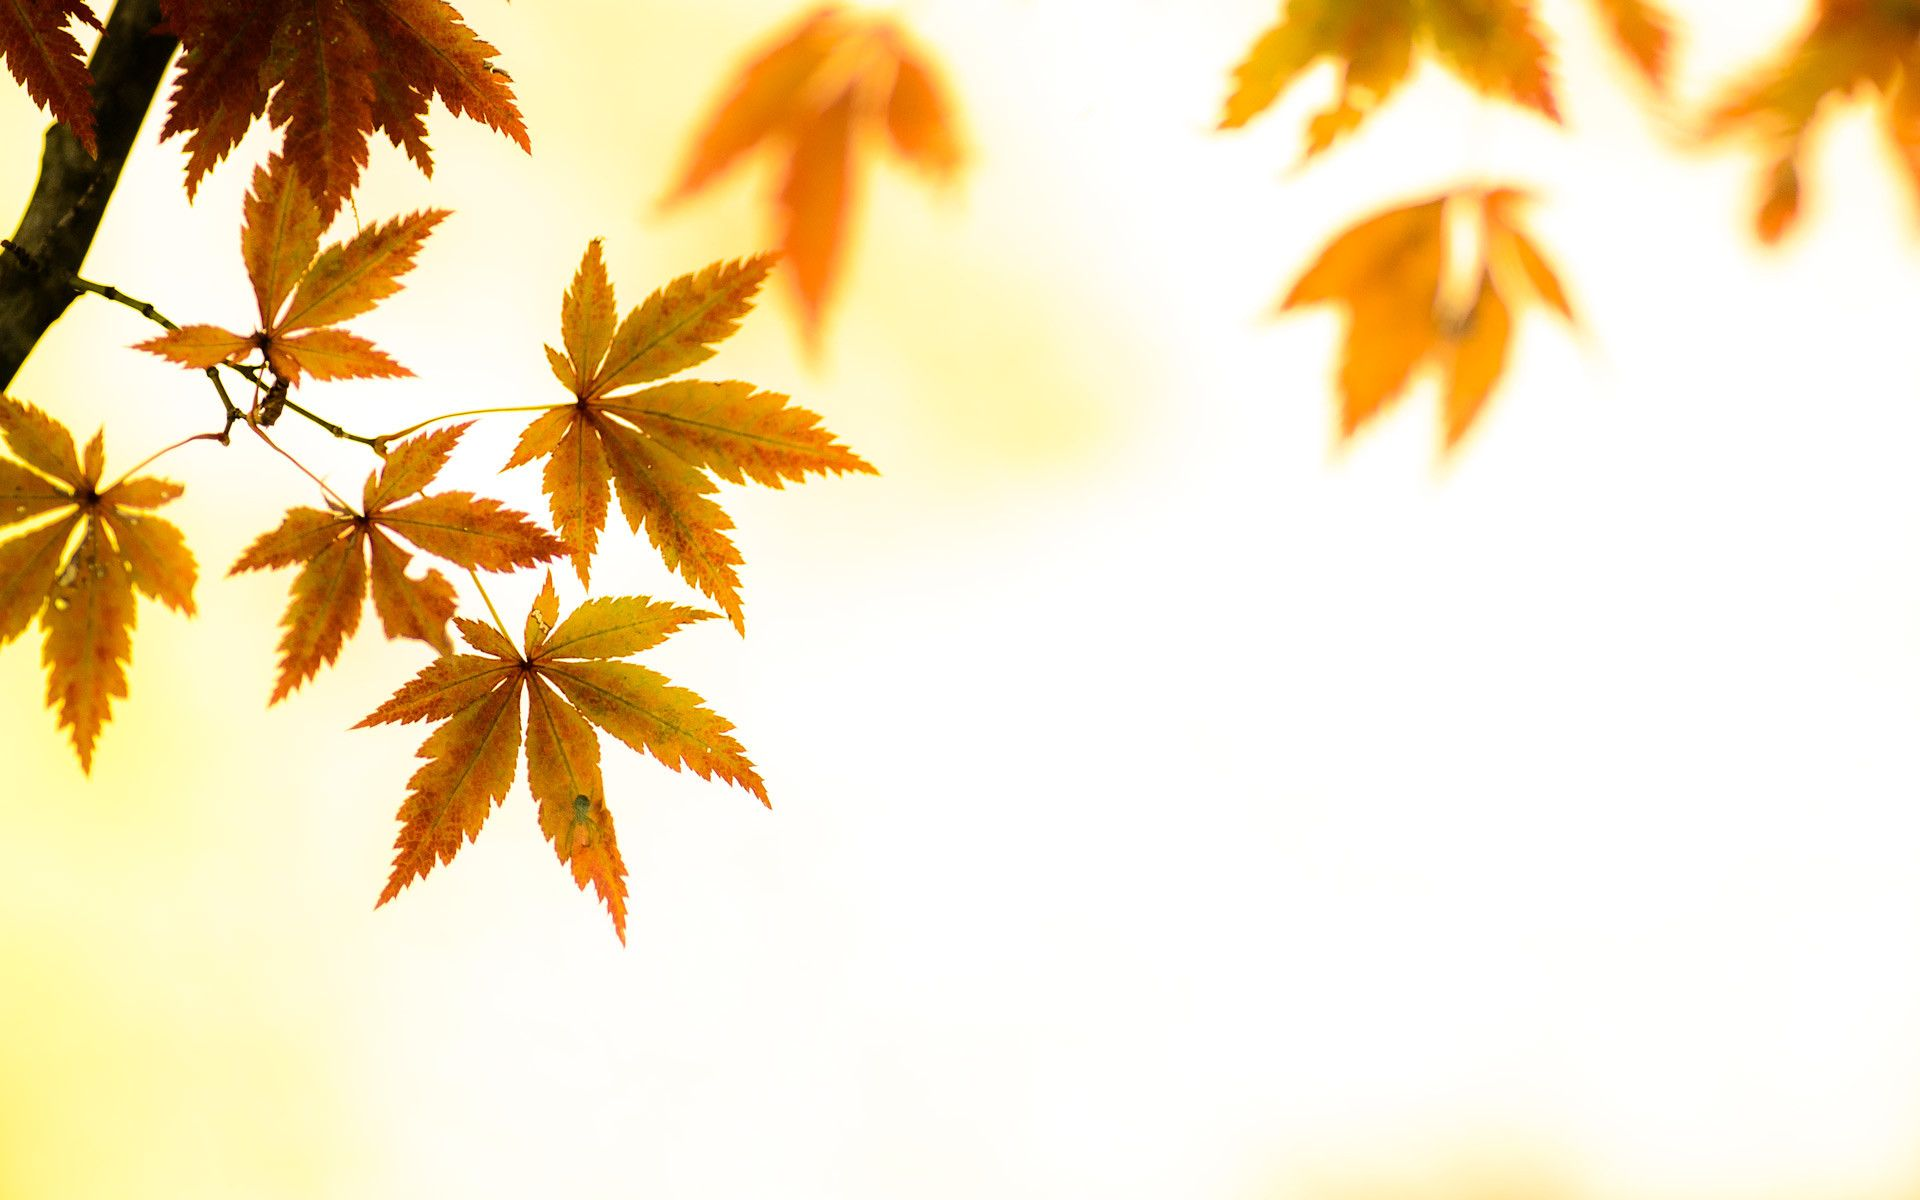 Fall Leaves Desktop Wallpaper Download Free Artsy Backgrounds Pixelstalk Net